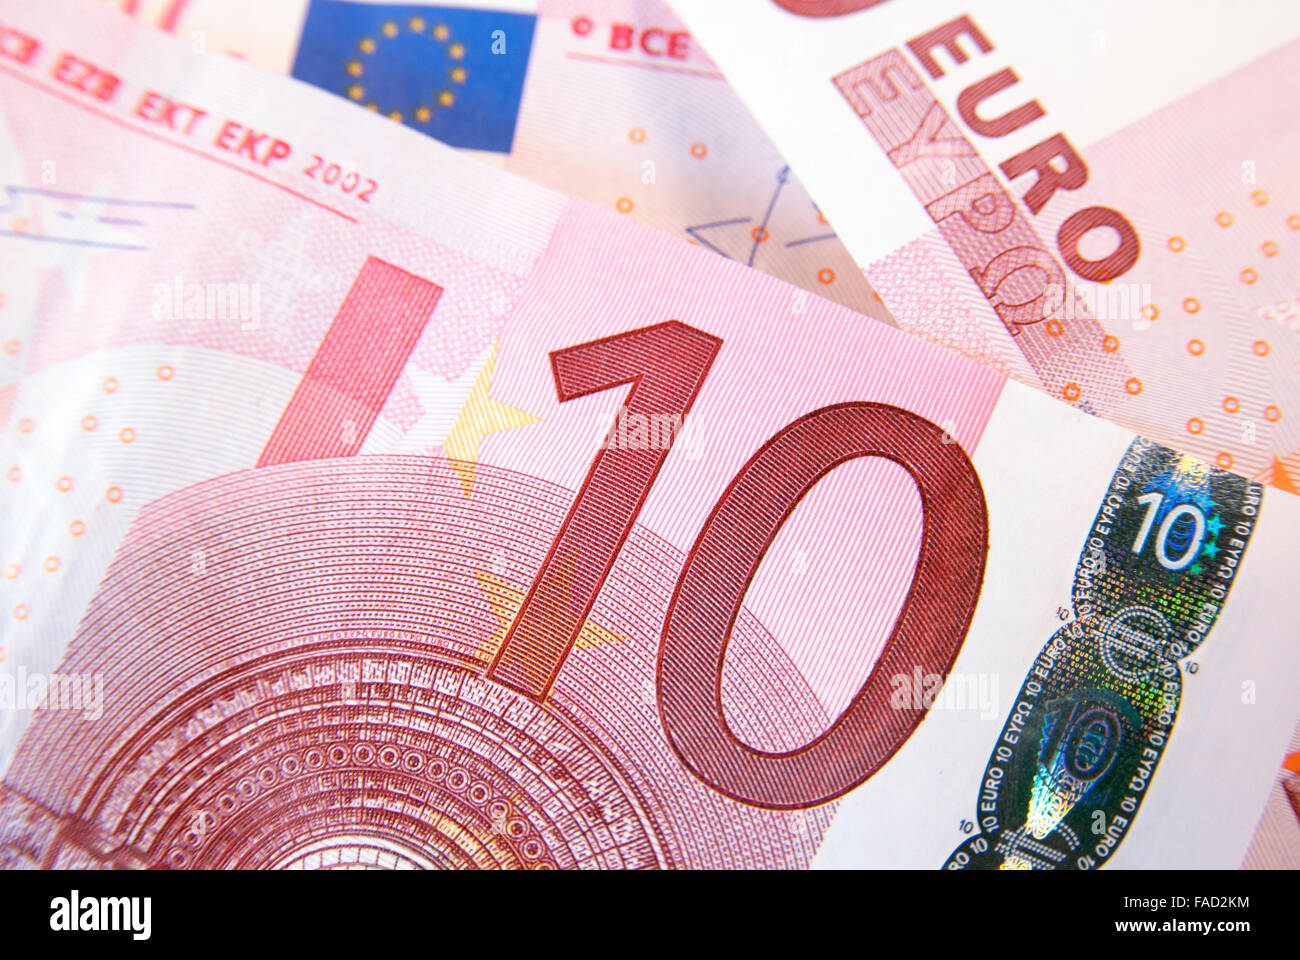 Ten euro banknote as a background - Stock Image